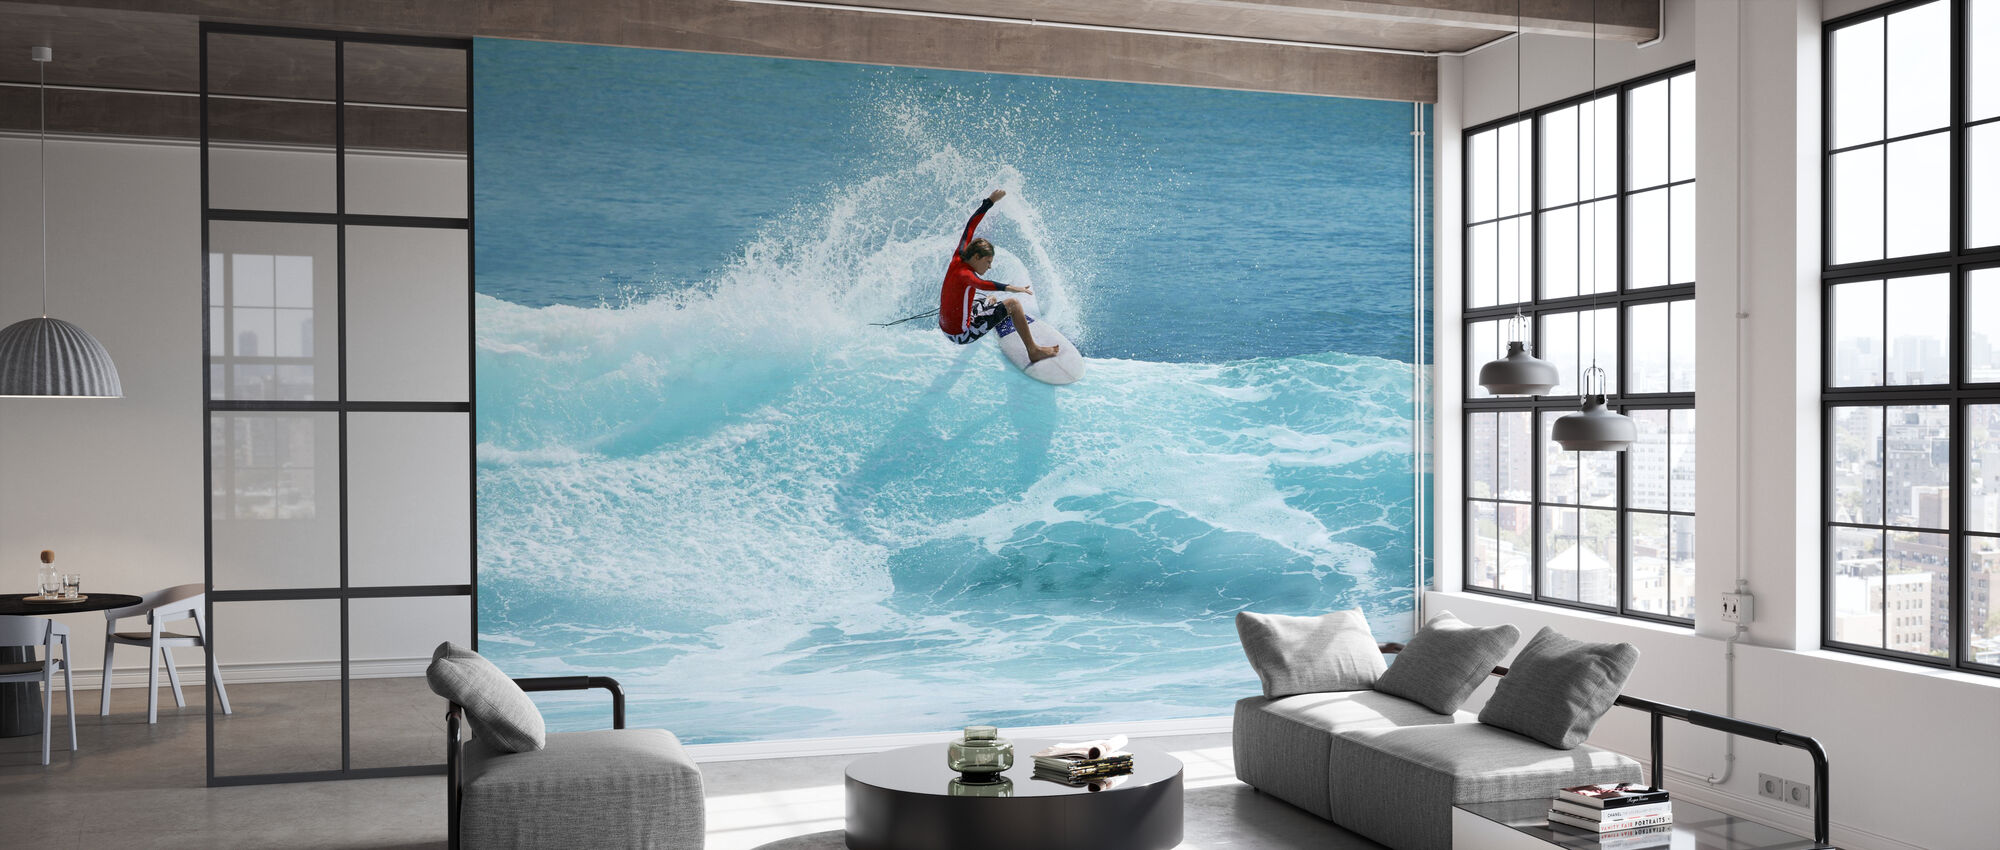 Surfer Carving Top van Wave - Behang - Kantoor